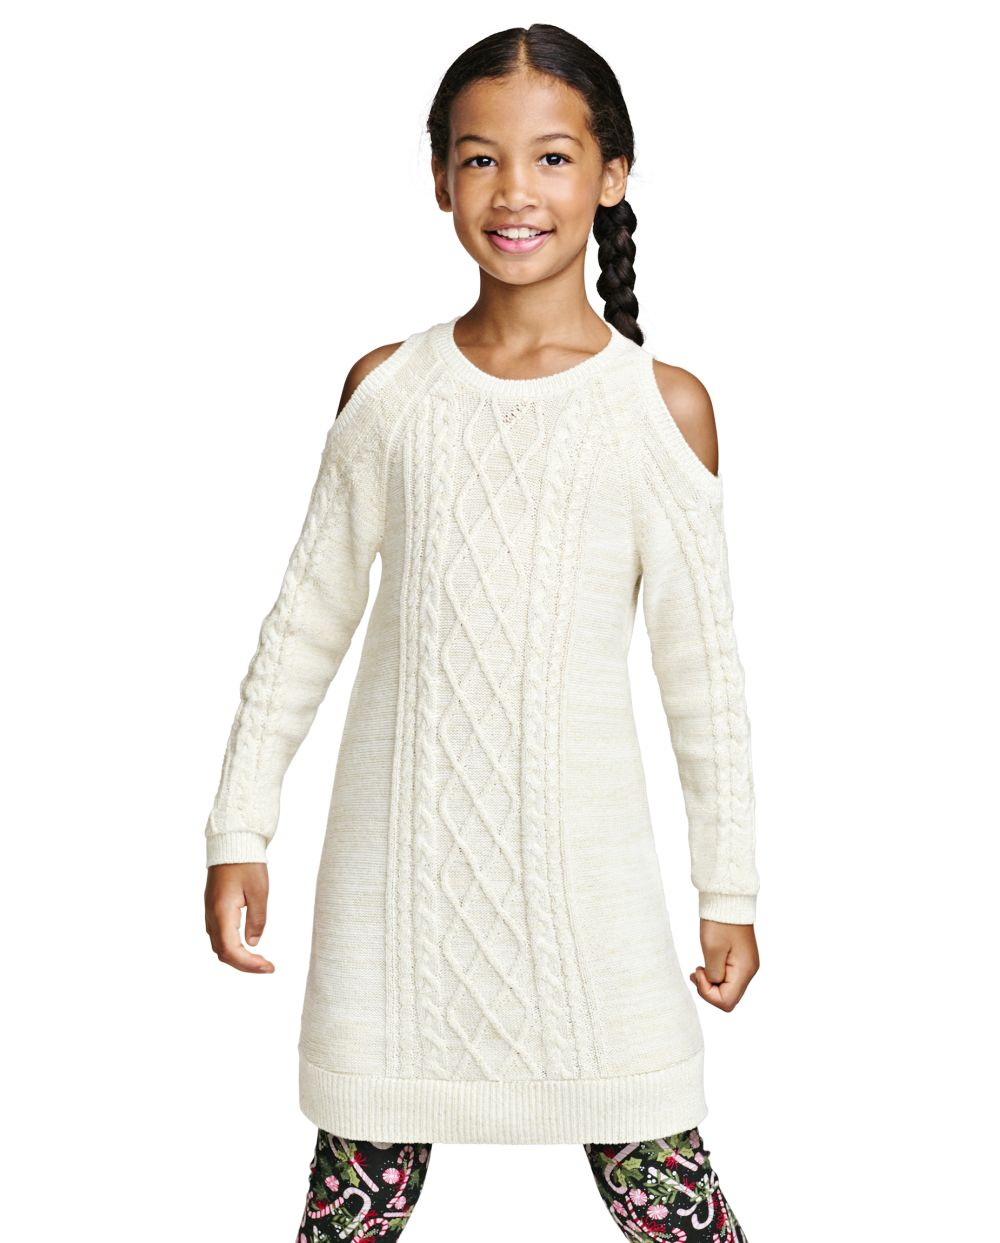 Girls Cable Knit Cold Shoulder Sweater Dress - White